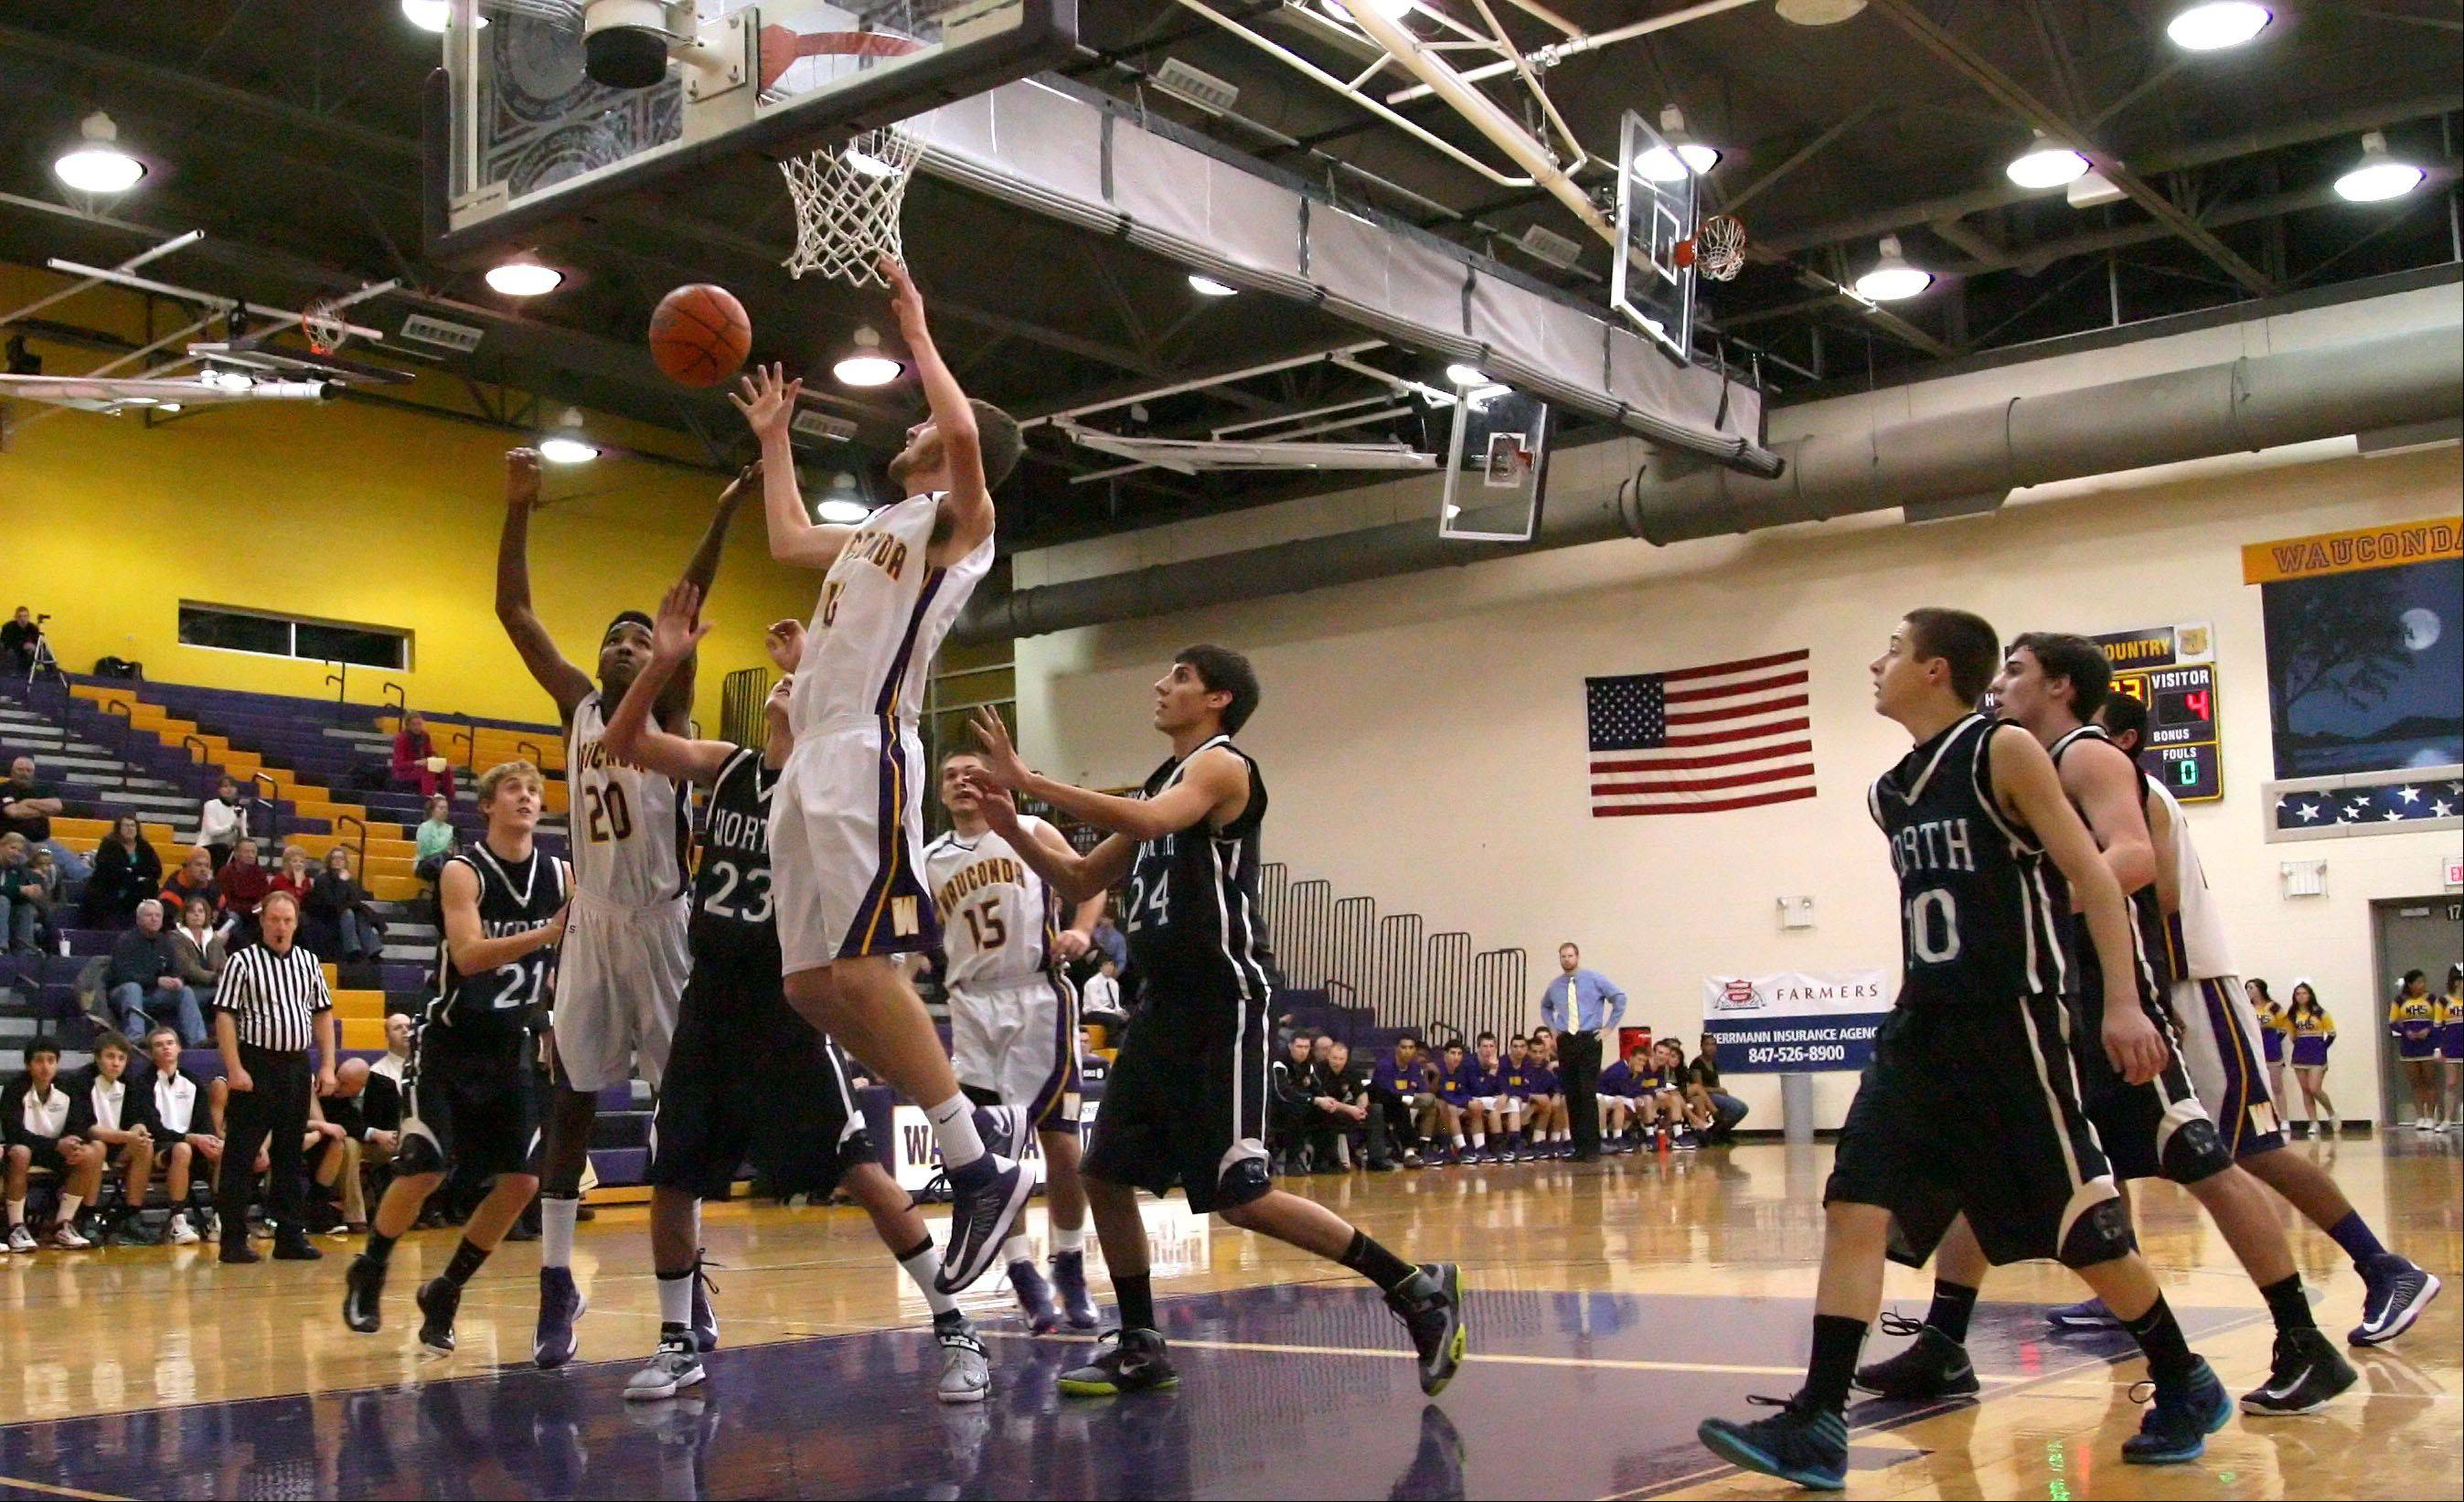 Images: Woodstock North vs. Wauconda, boys basketball